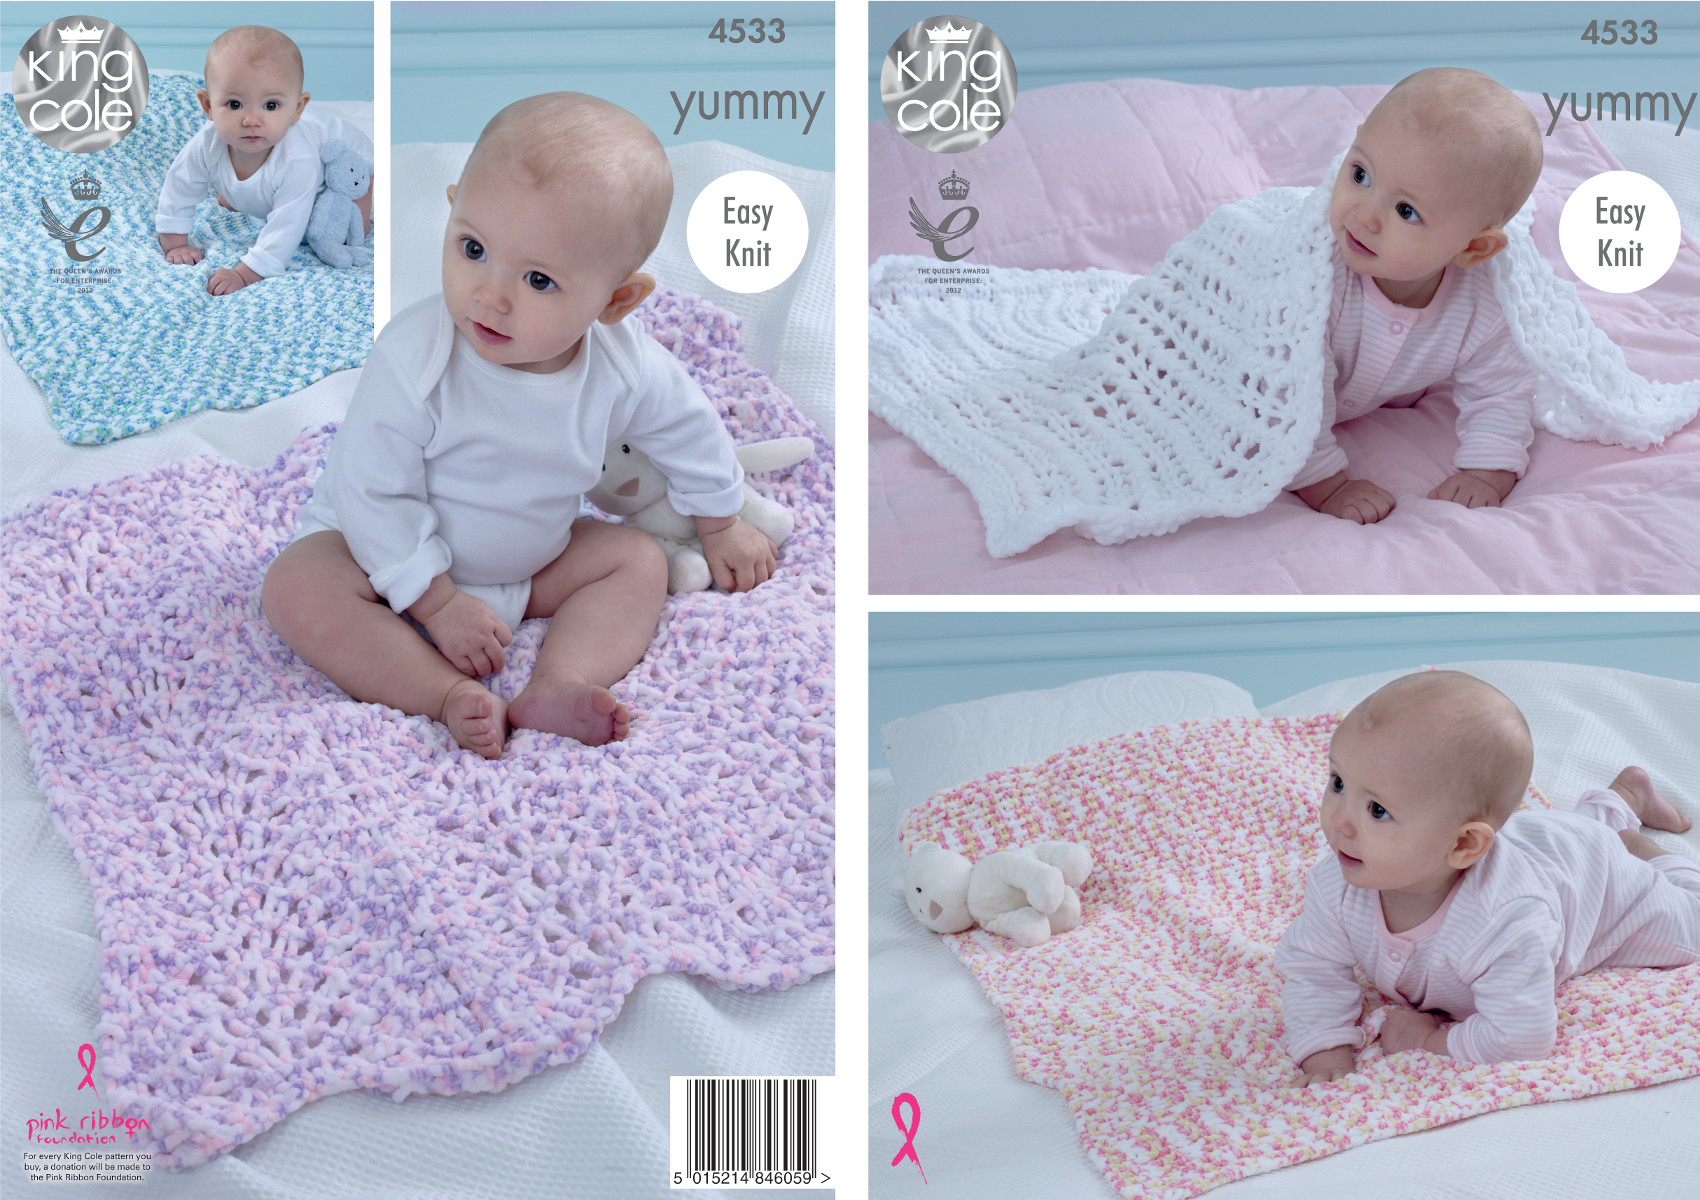 Knitting Patterns For Baby Comfort Blankets : King Cole Knitting Pattern Easy Knit Baby Comfort Blankets Yummy Chunky 4533 ...